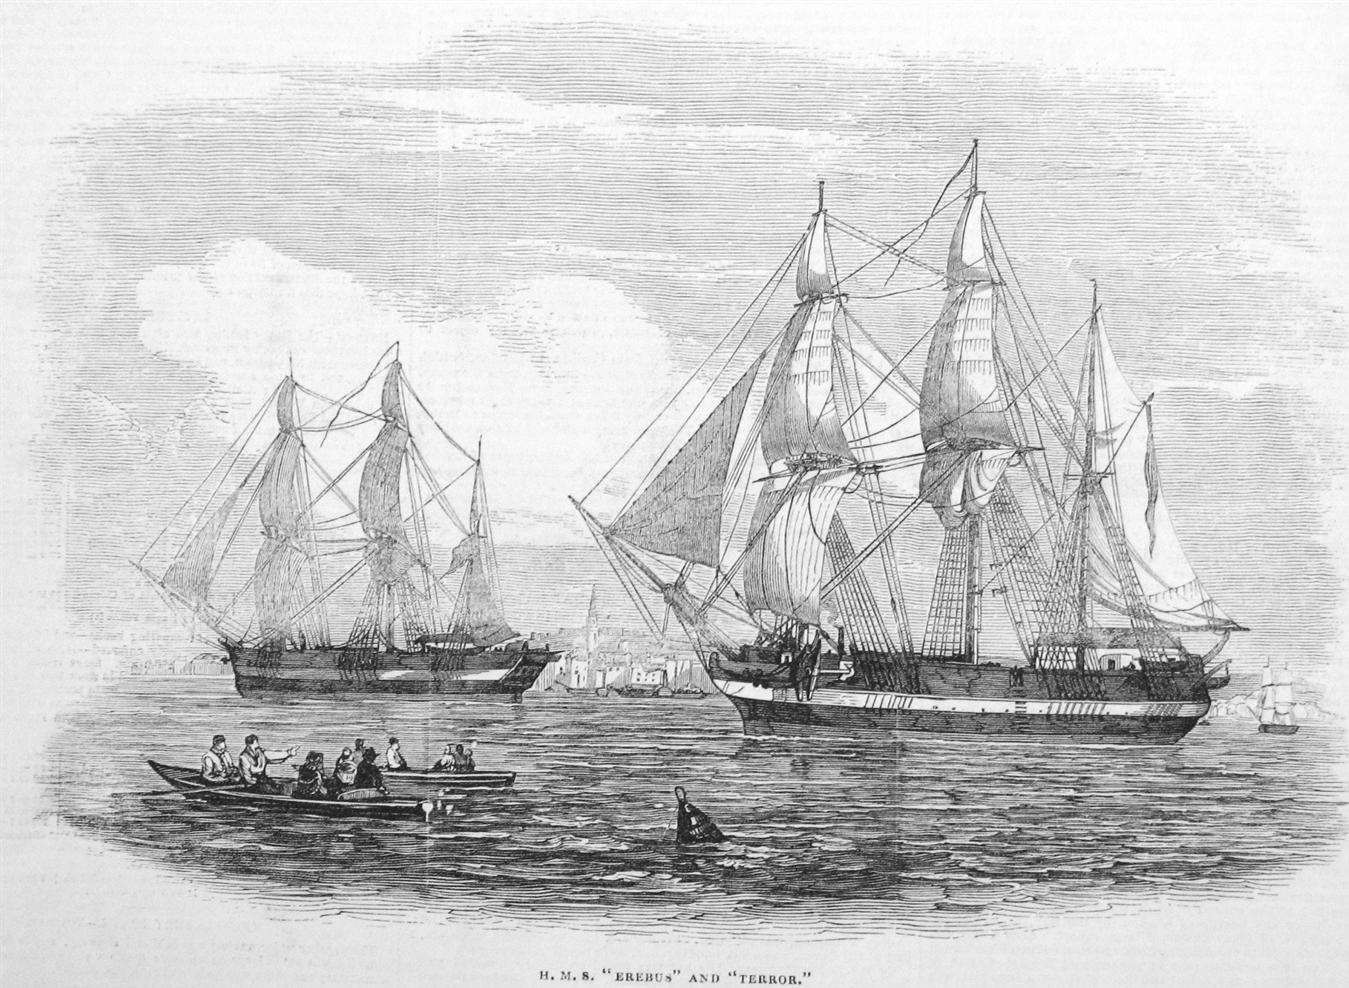 The Terror and the Erebus were used for 129 men to chart the Northwest Passage